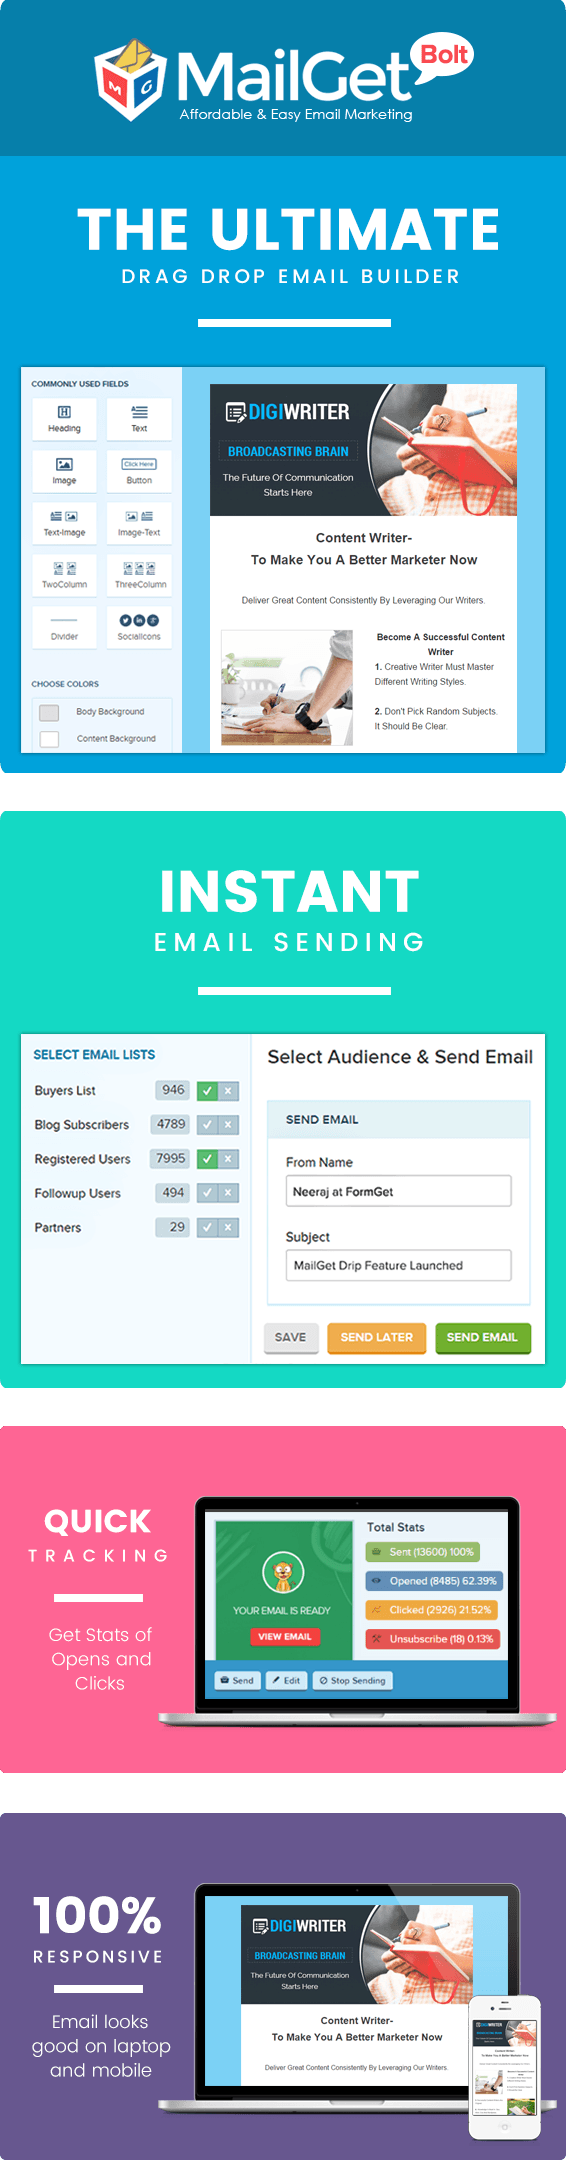 Email Marketing For Content Writers